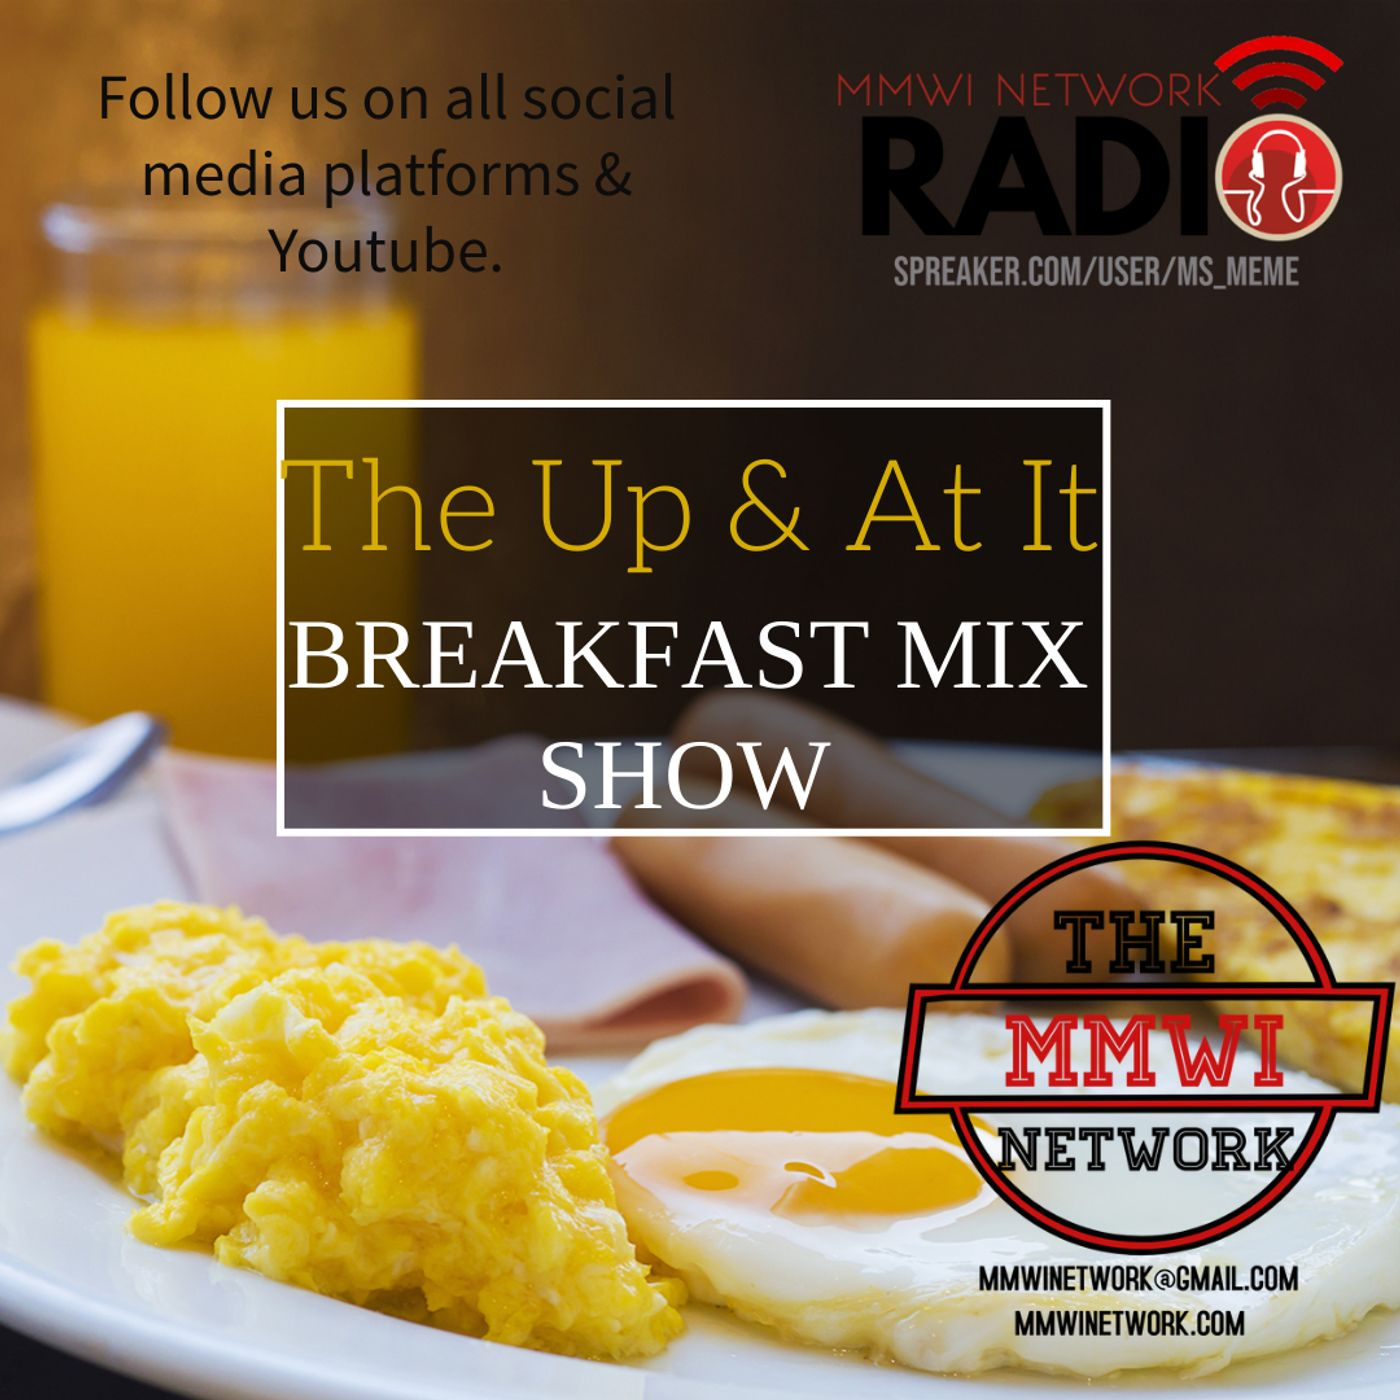 The Up & At It Breakfast Mix Show 9-28-2021